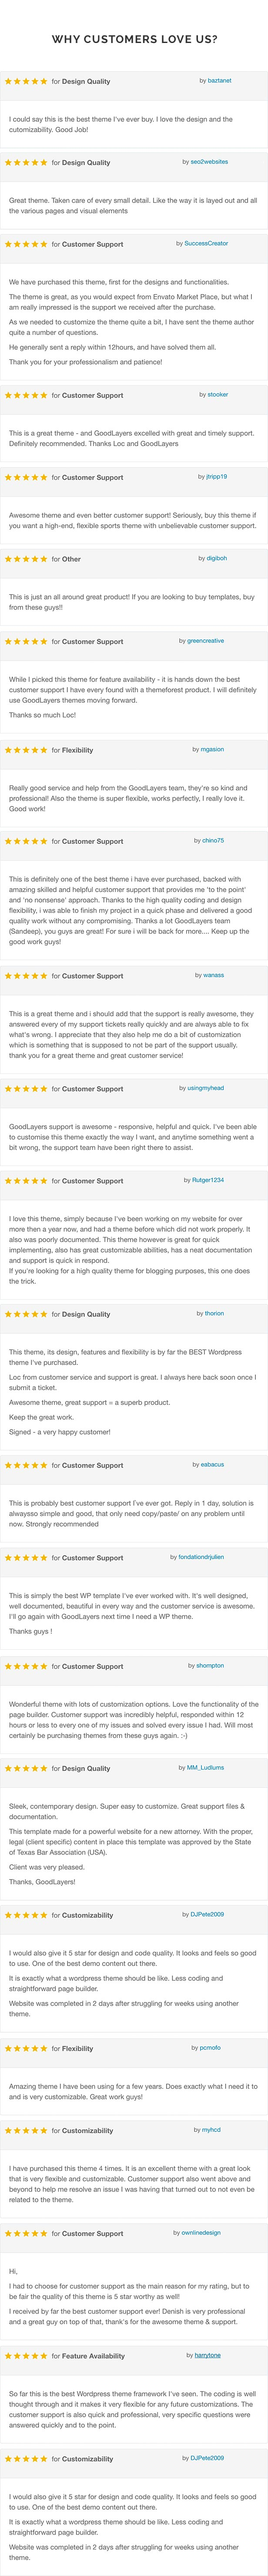 Construction WordPress Theme For Construction & Industrial Company | Real Factory - 5